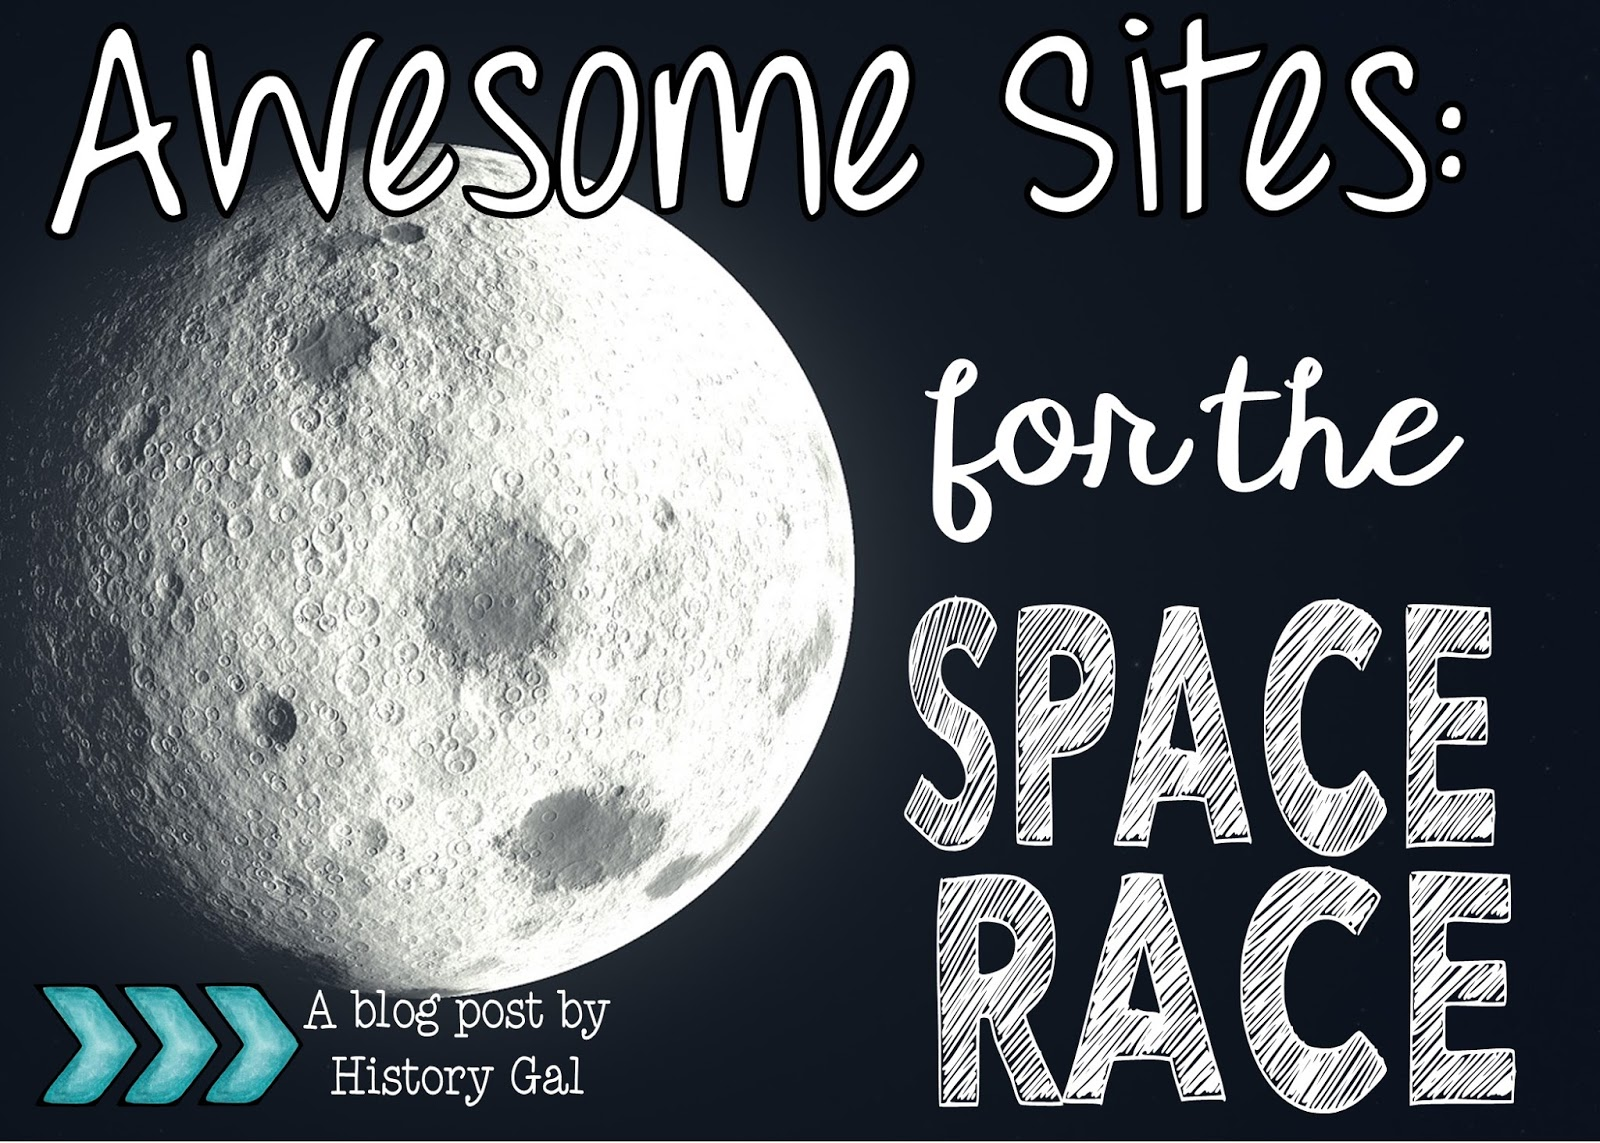 Engaging Sites to Teach the Space Race by History Gal